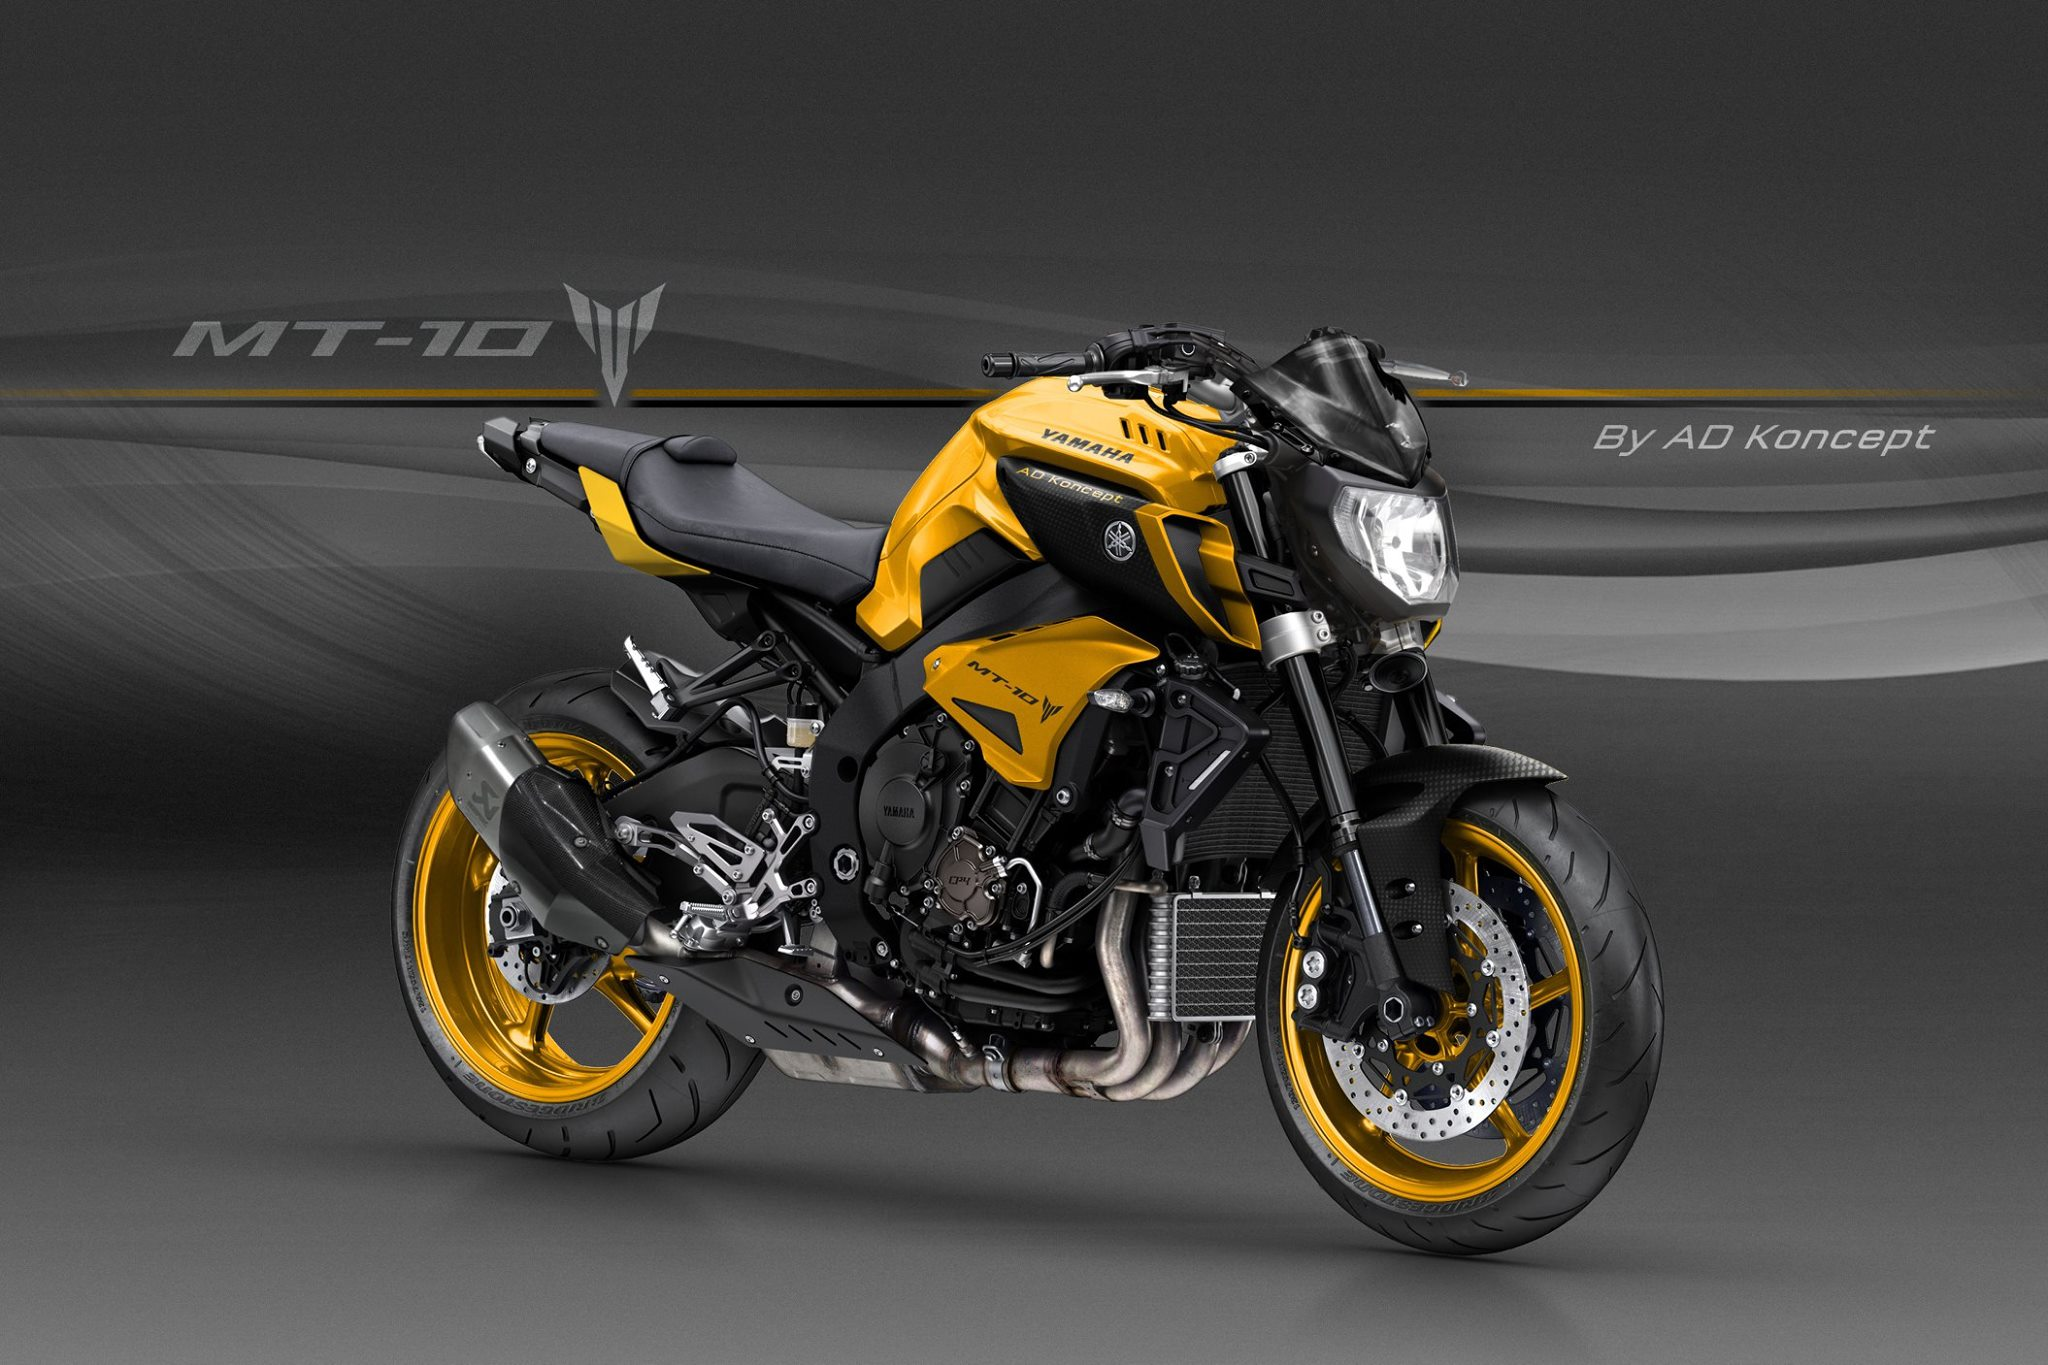 yamaha mt 10 in valentino rossi livery and more from ad. Black Bedroom Furniture Sets. Home Design Ideas